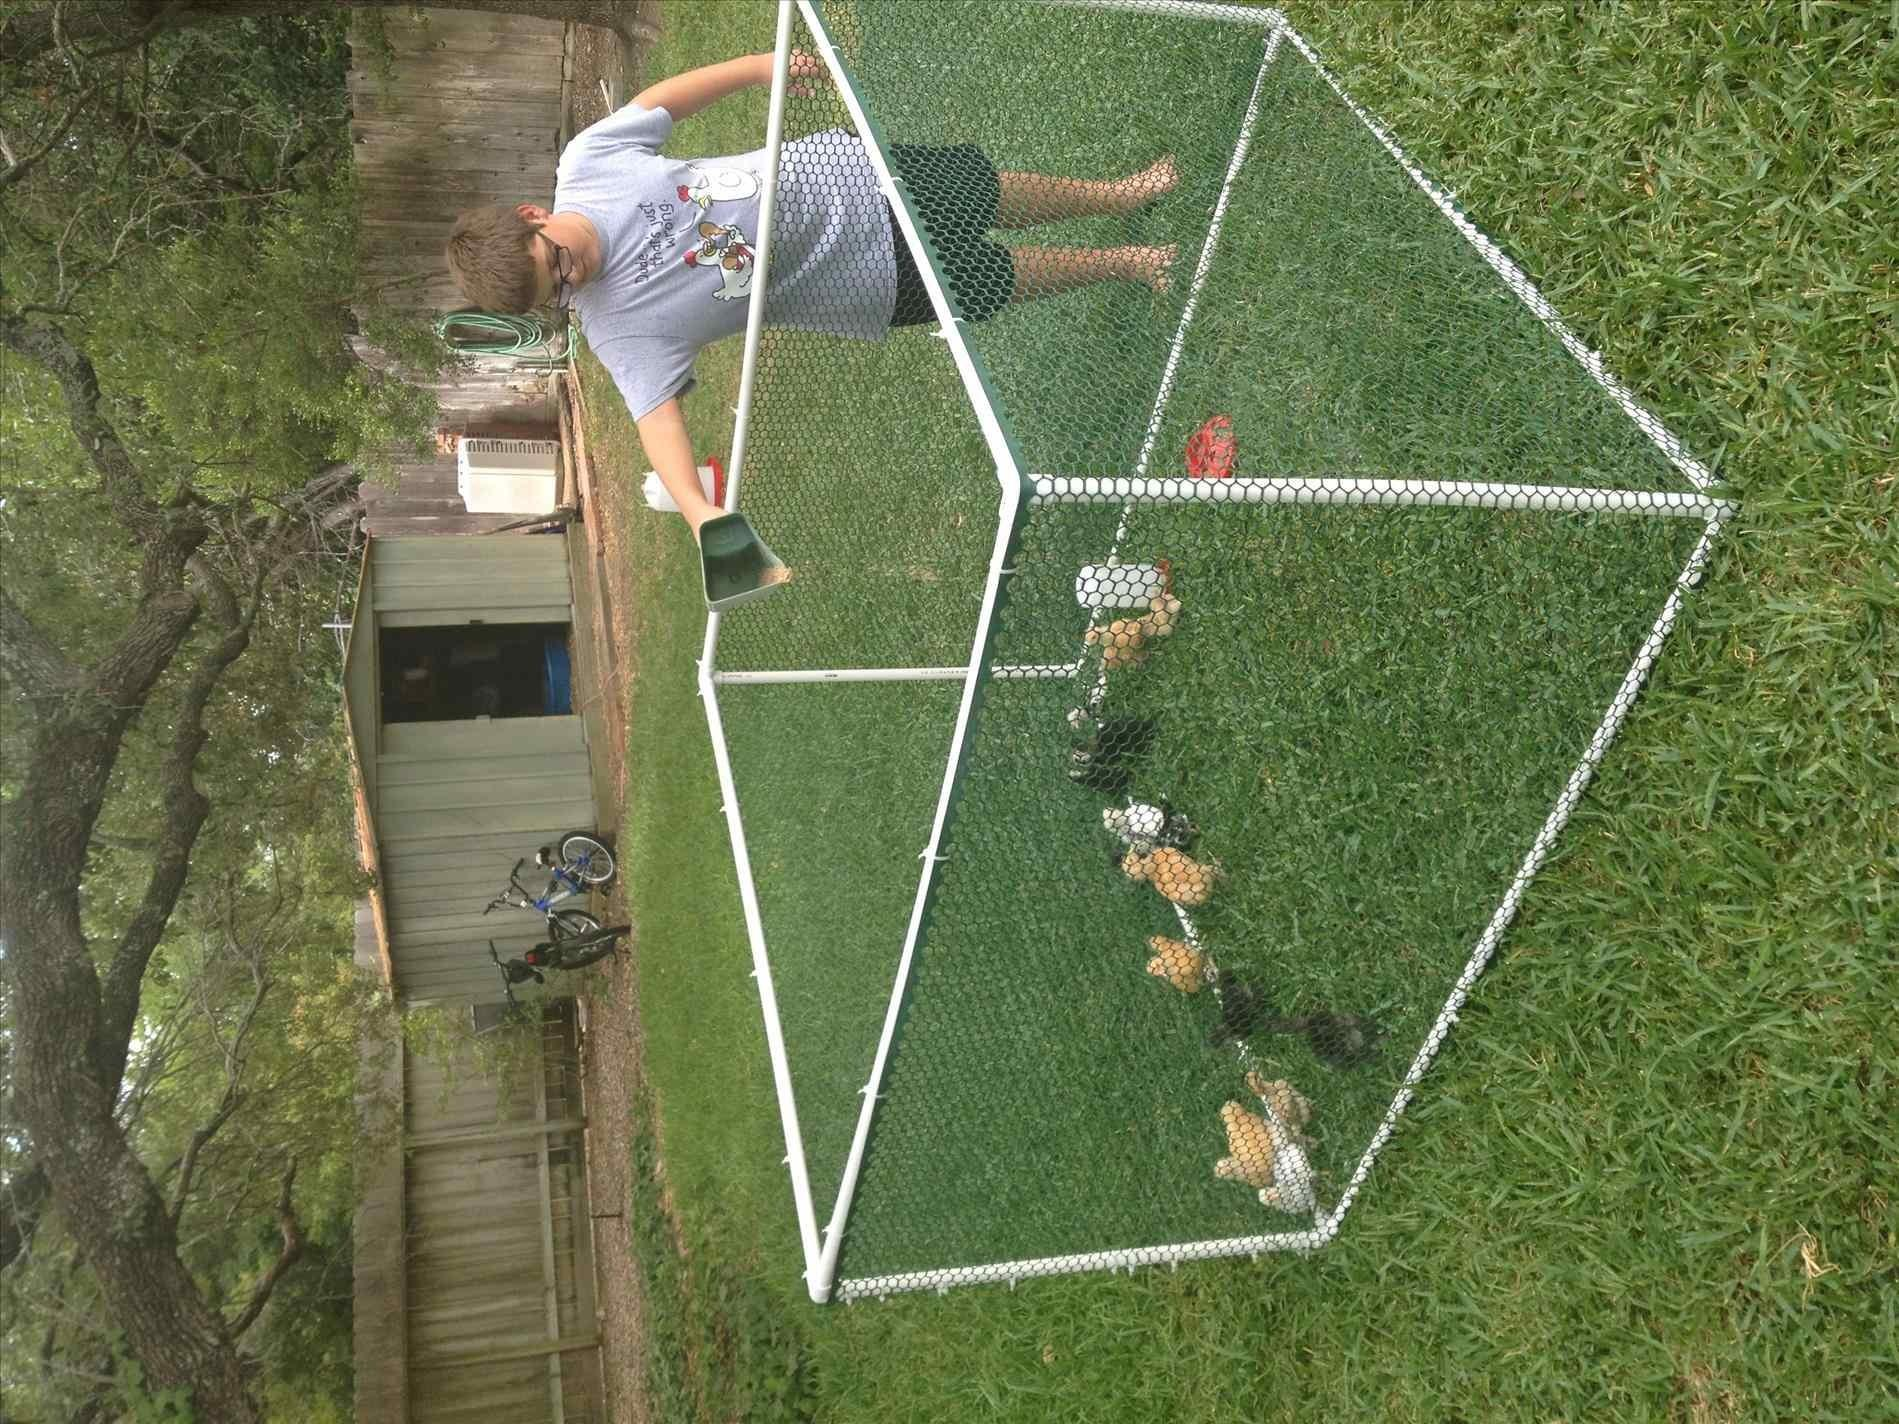 Pvc Pipe Fence Projects Home Gardens Geek